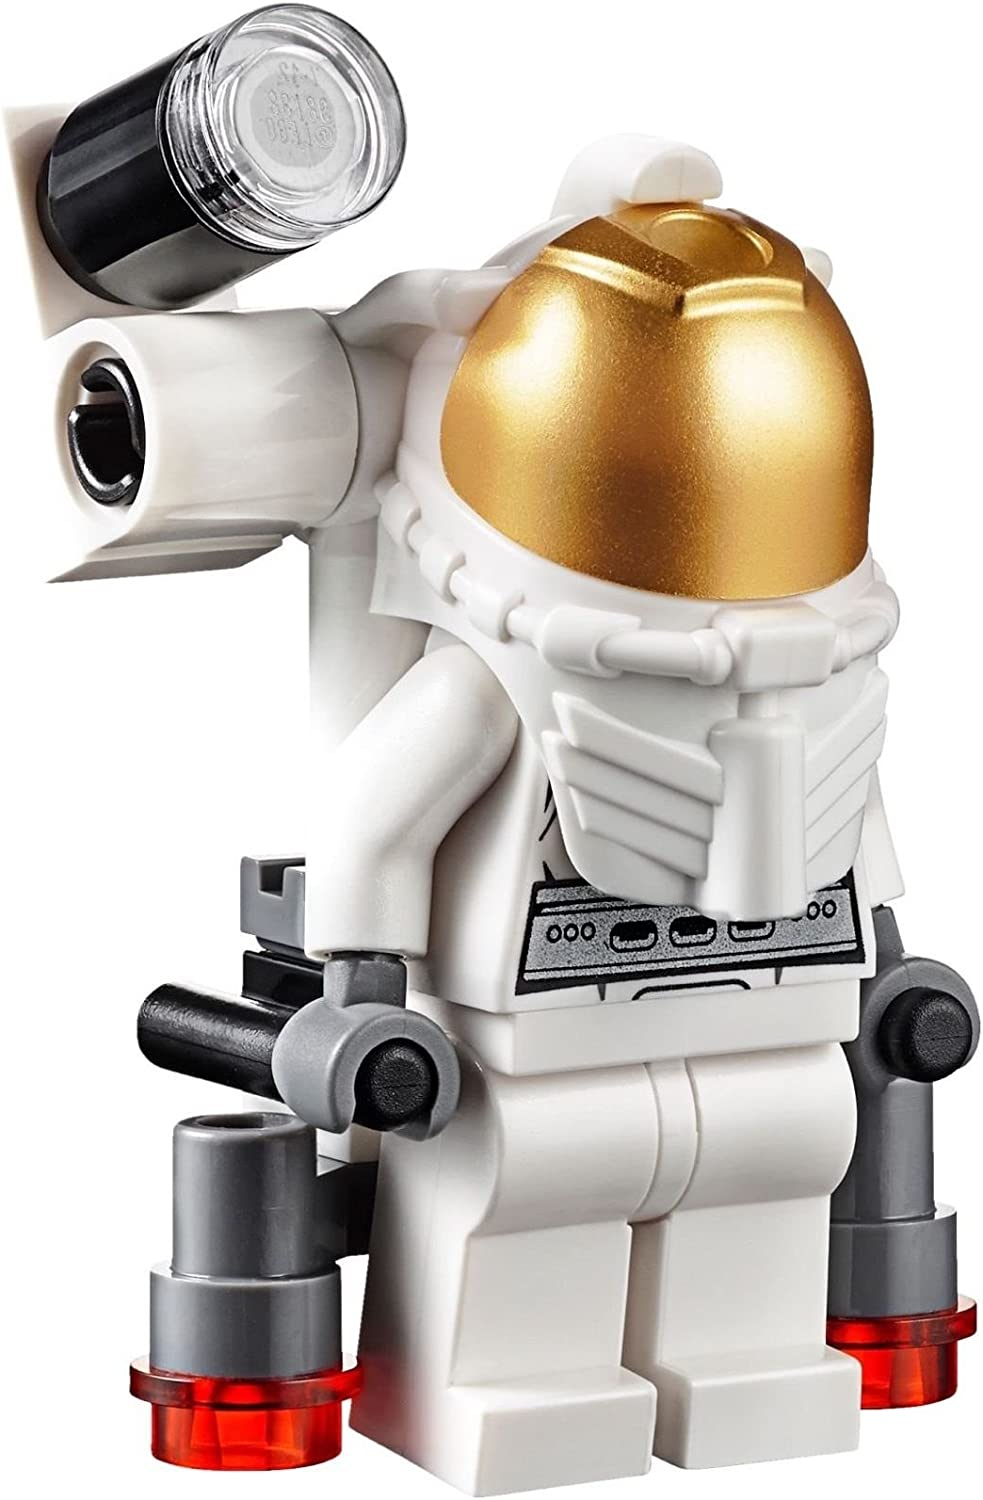 LEGO City MiniFigure: Space Port - Astronaut (with Jetpack and Flashlight) 60077